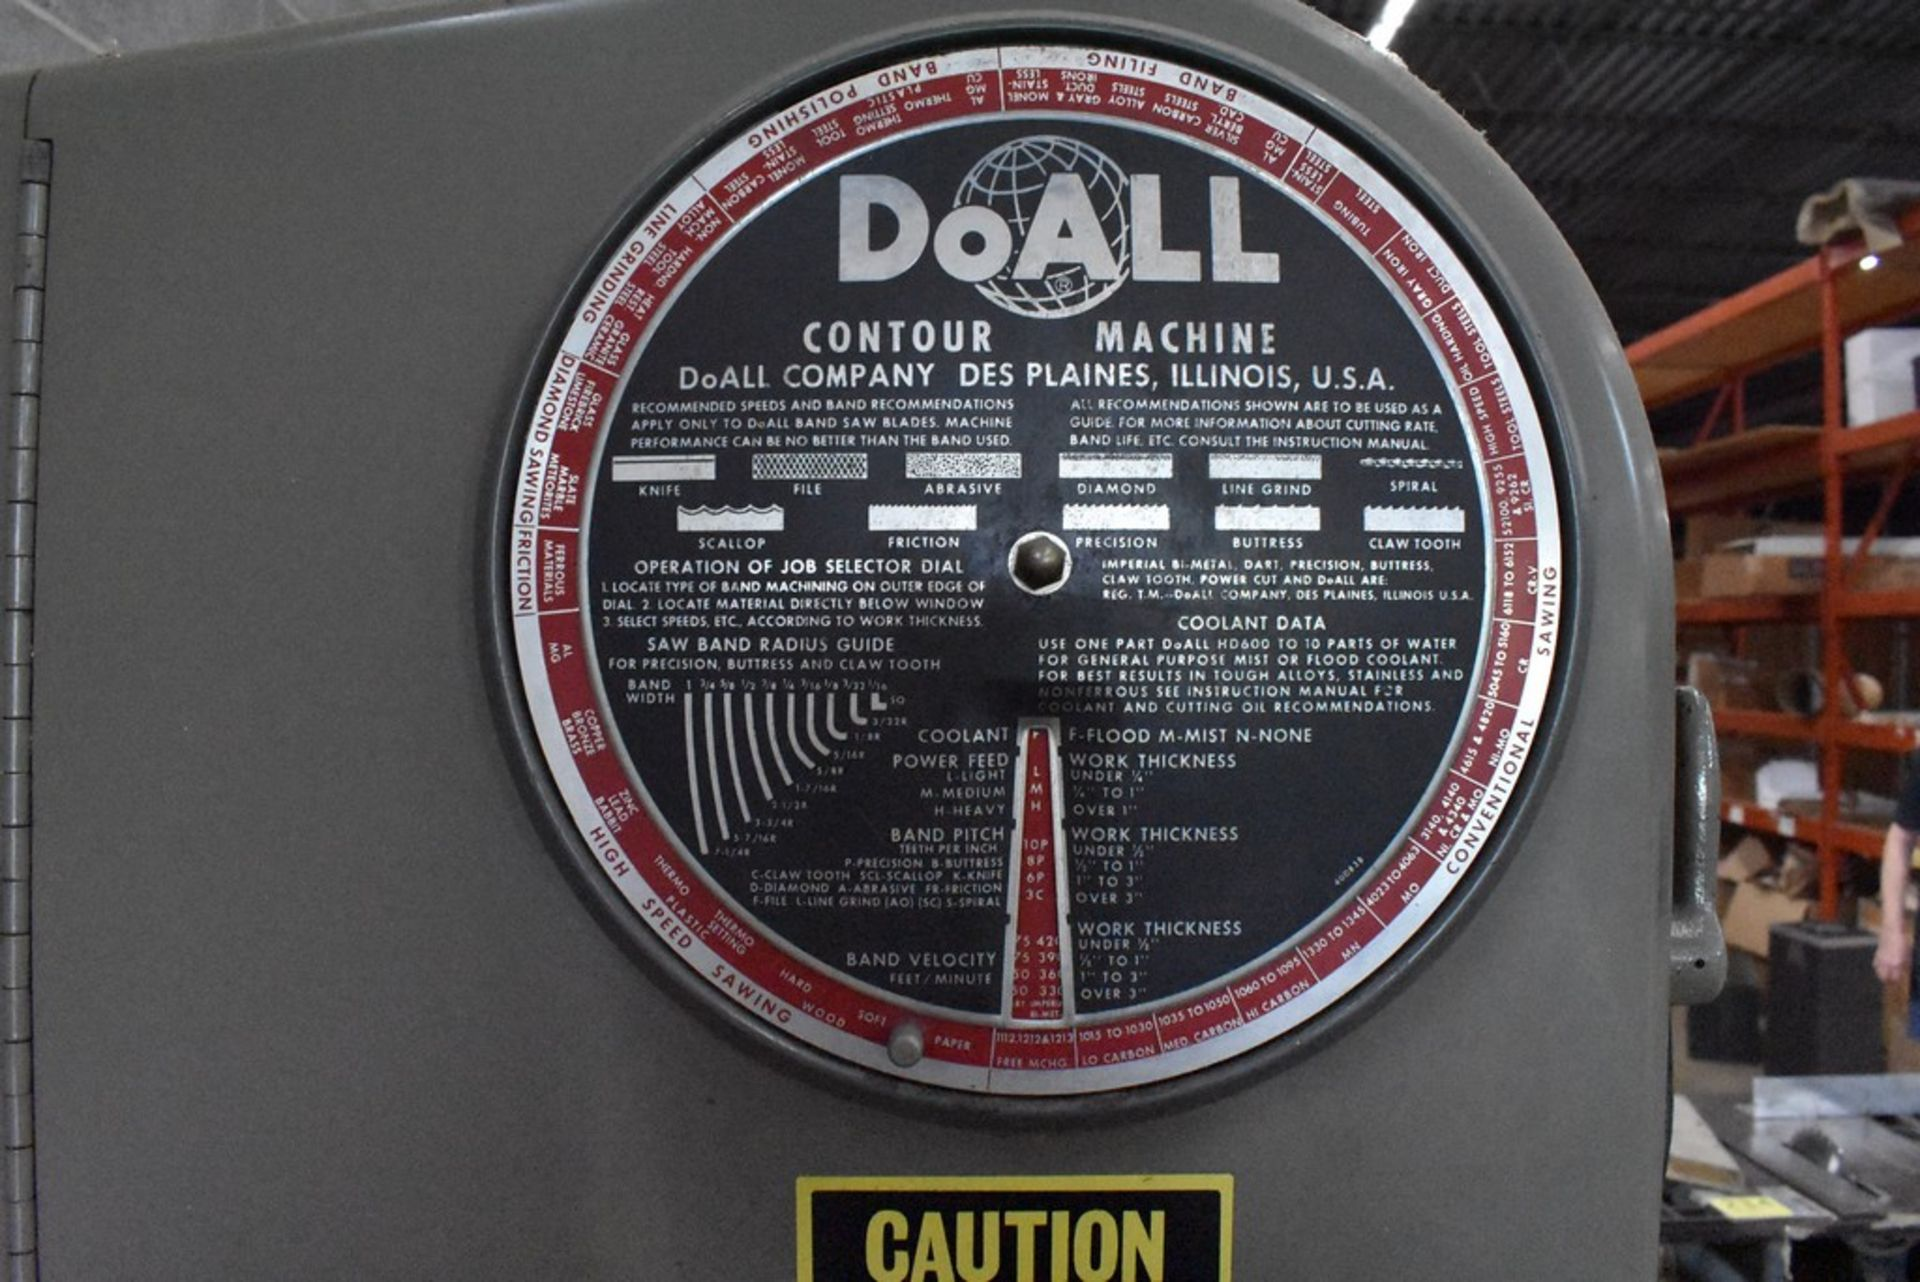 """DOALL 16"""" MODEL 1612-1 VERTICAL BAND SAW, S/N 148-681291, WITH BLADE WELDER - Image 3 of 9"""